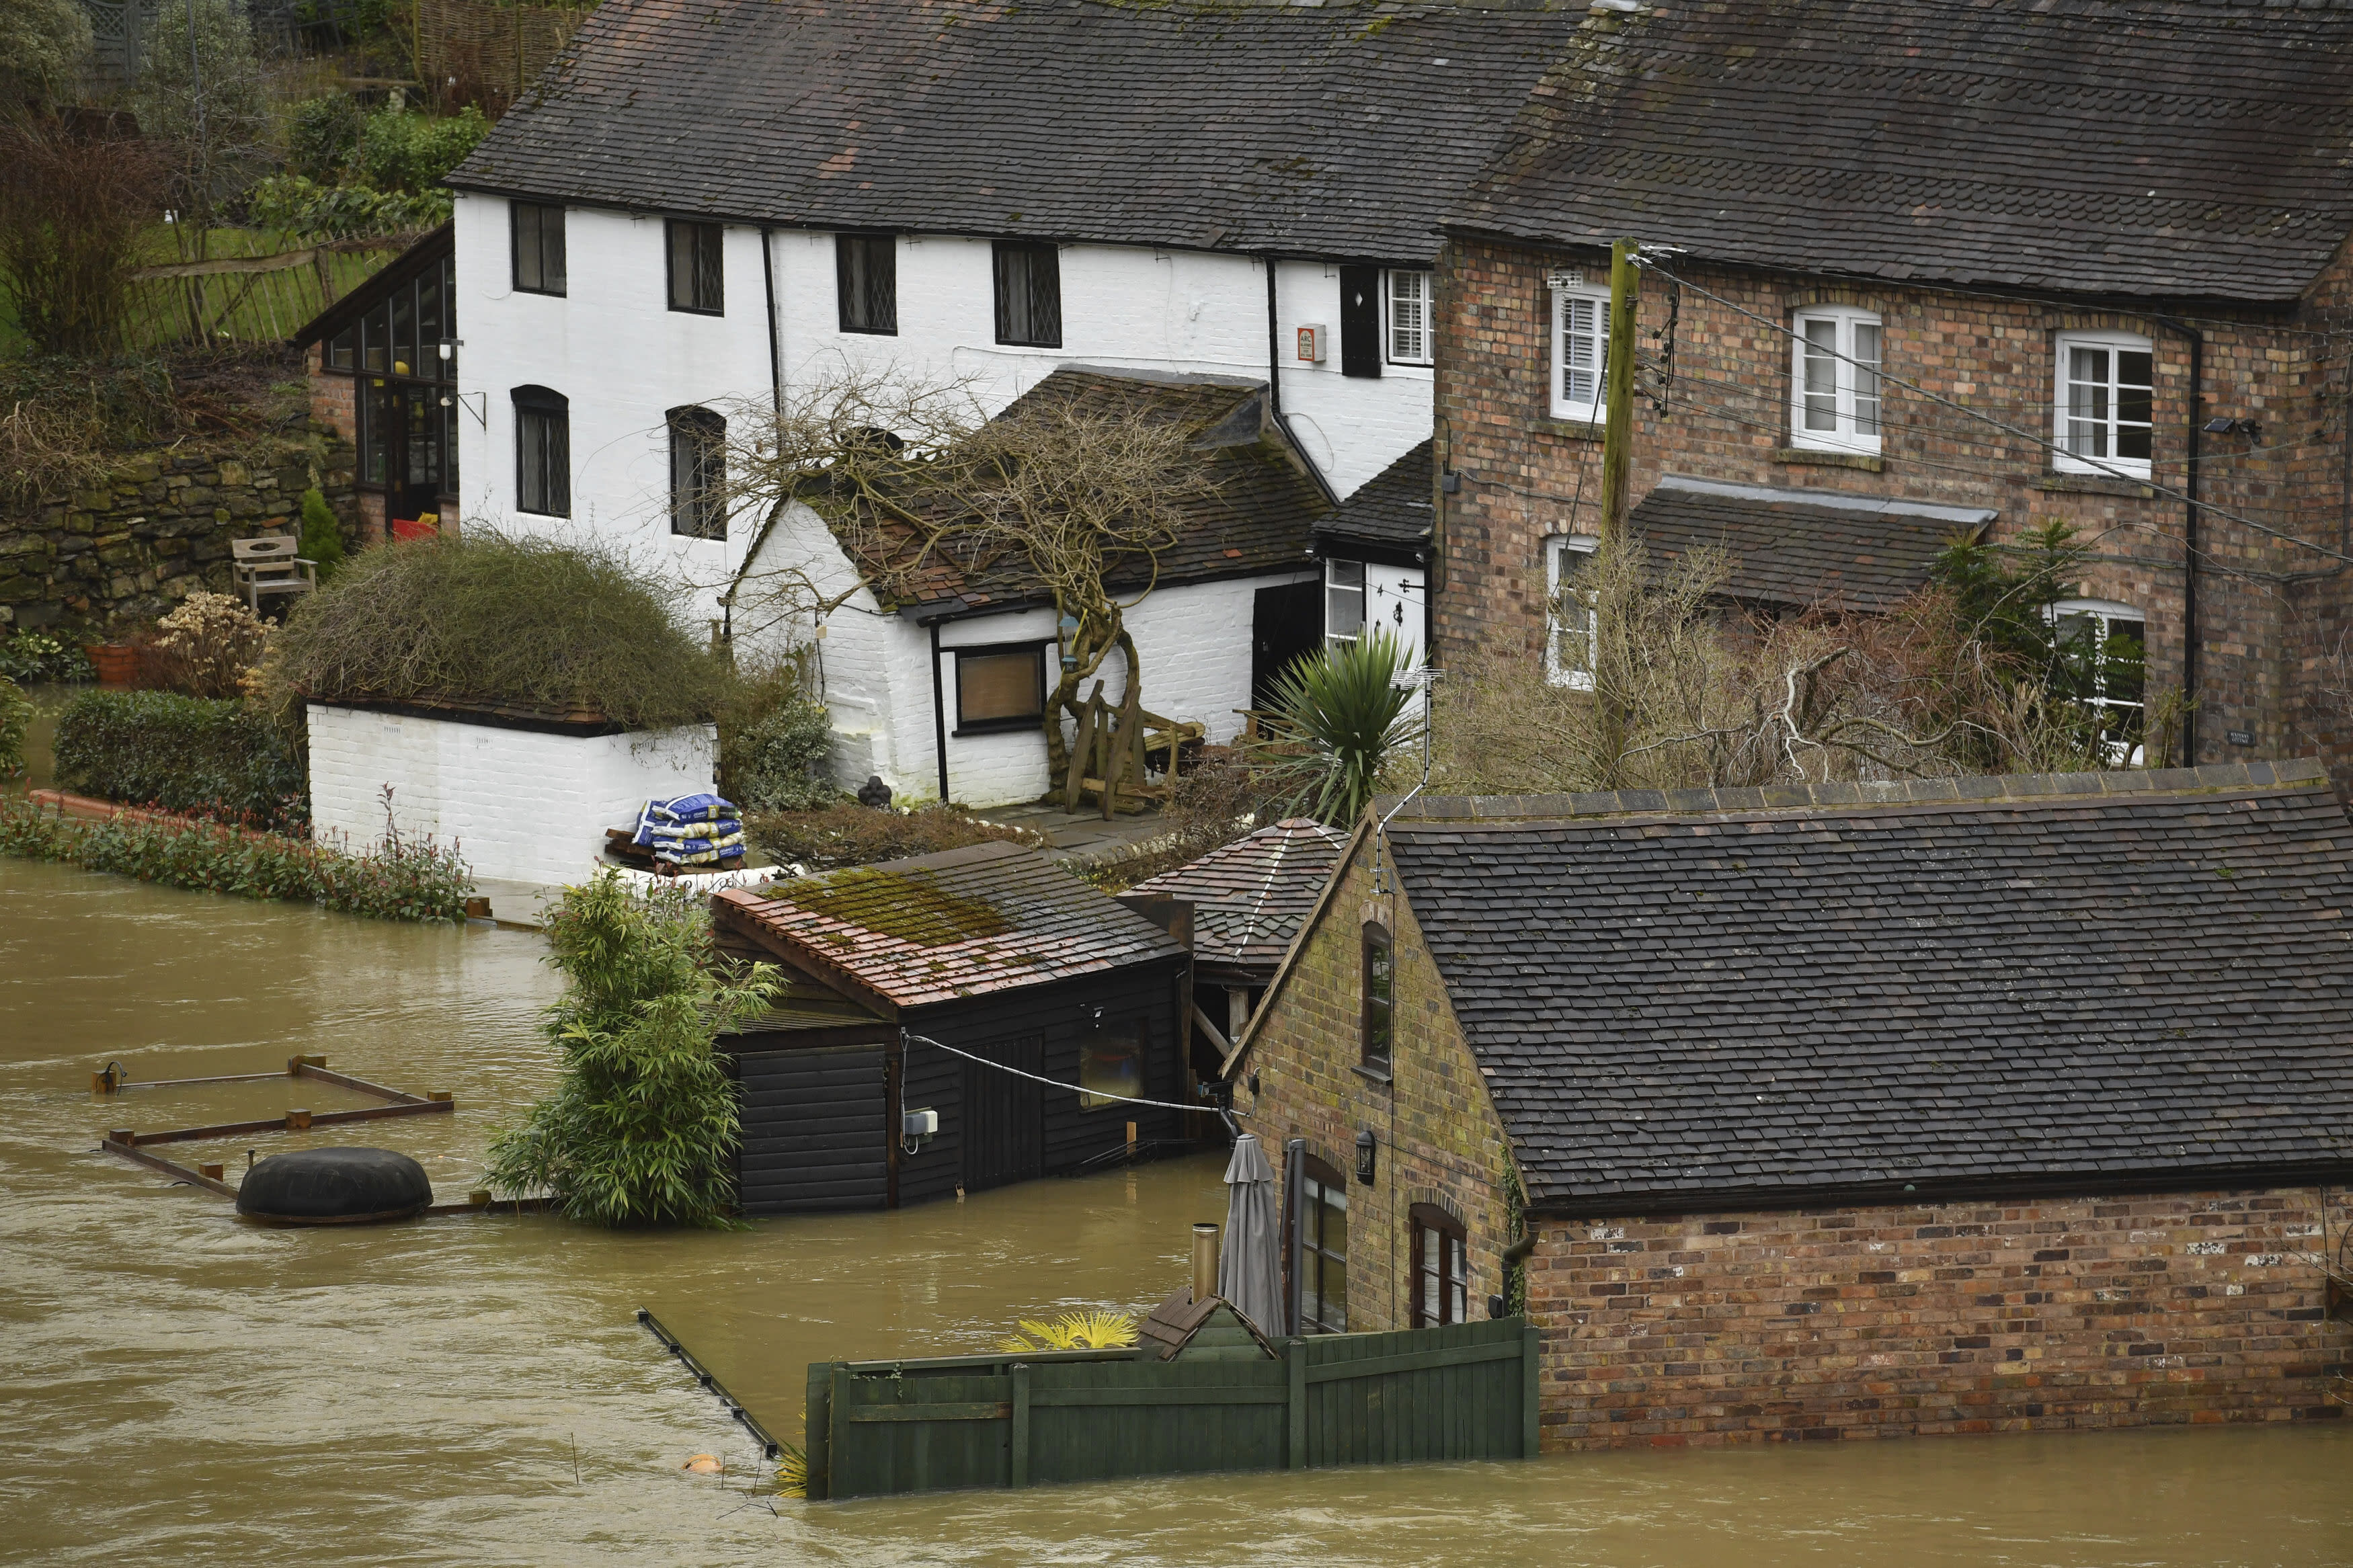 Houses surrounded are inundated by flood water after heavy rains breached normal watercourses in the area of Ironbridge, England, Wednesday Feb.19, 2020. Flood-hit communities are braced for further heavy rain as river levels continue to threaten to breach barriers, in the aftermath of Storm Dennis which has swept northern Europe. (Jacob King/PA via AP)